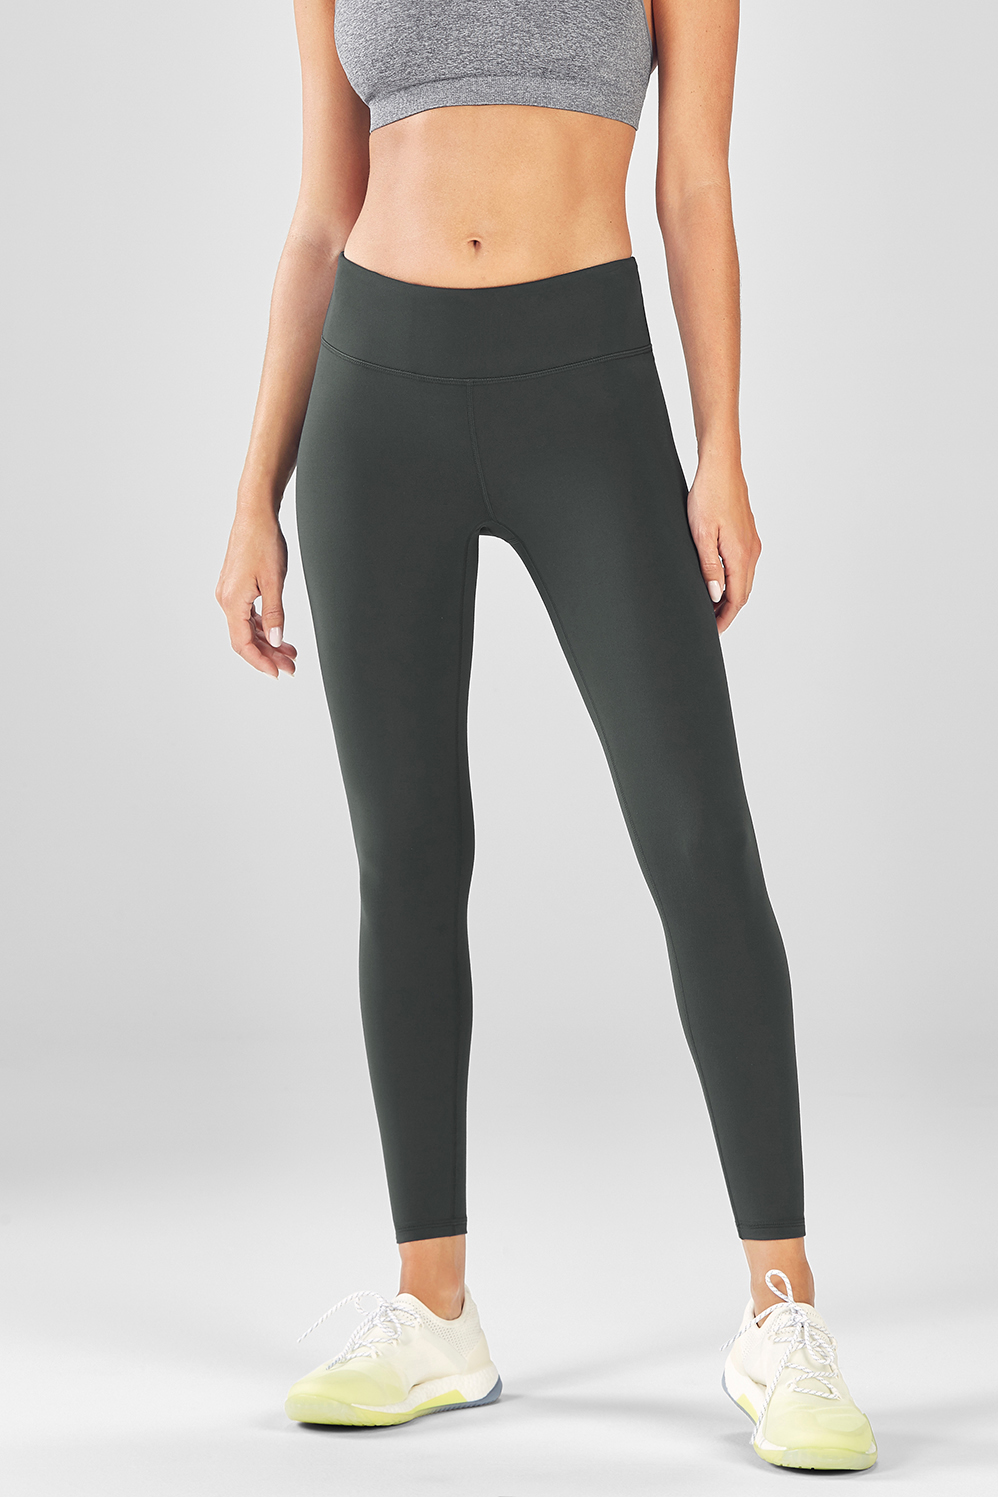 Salar Solid PowerHold® Legging - Everglade